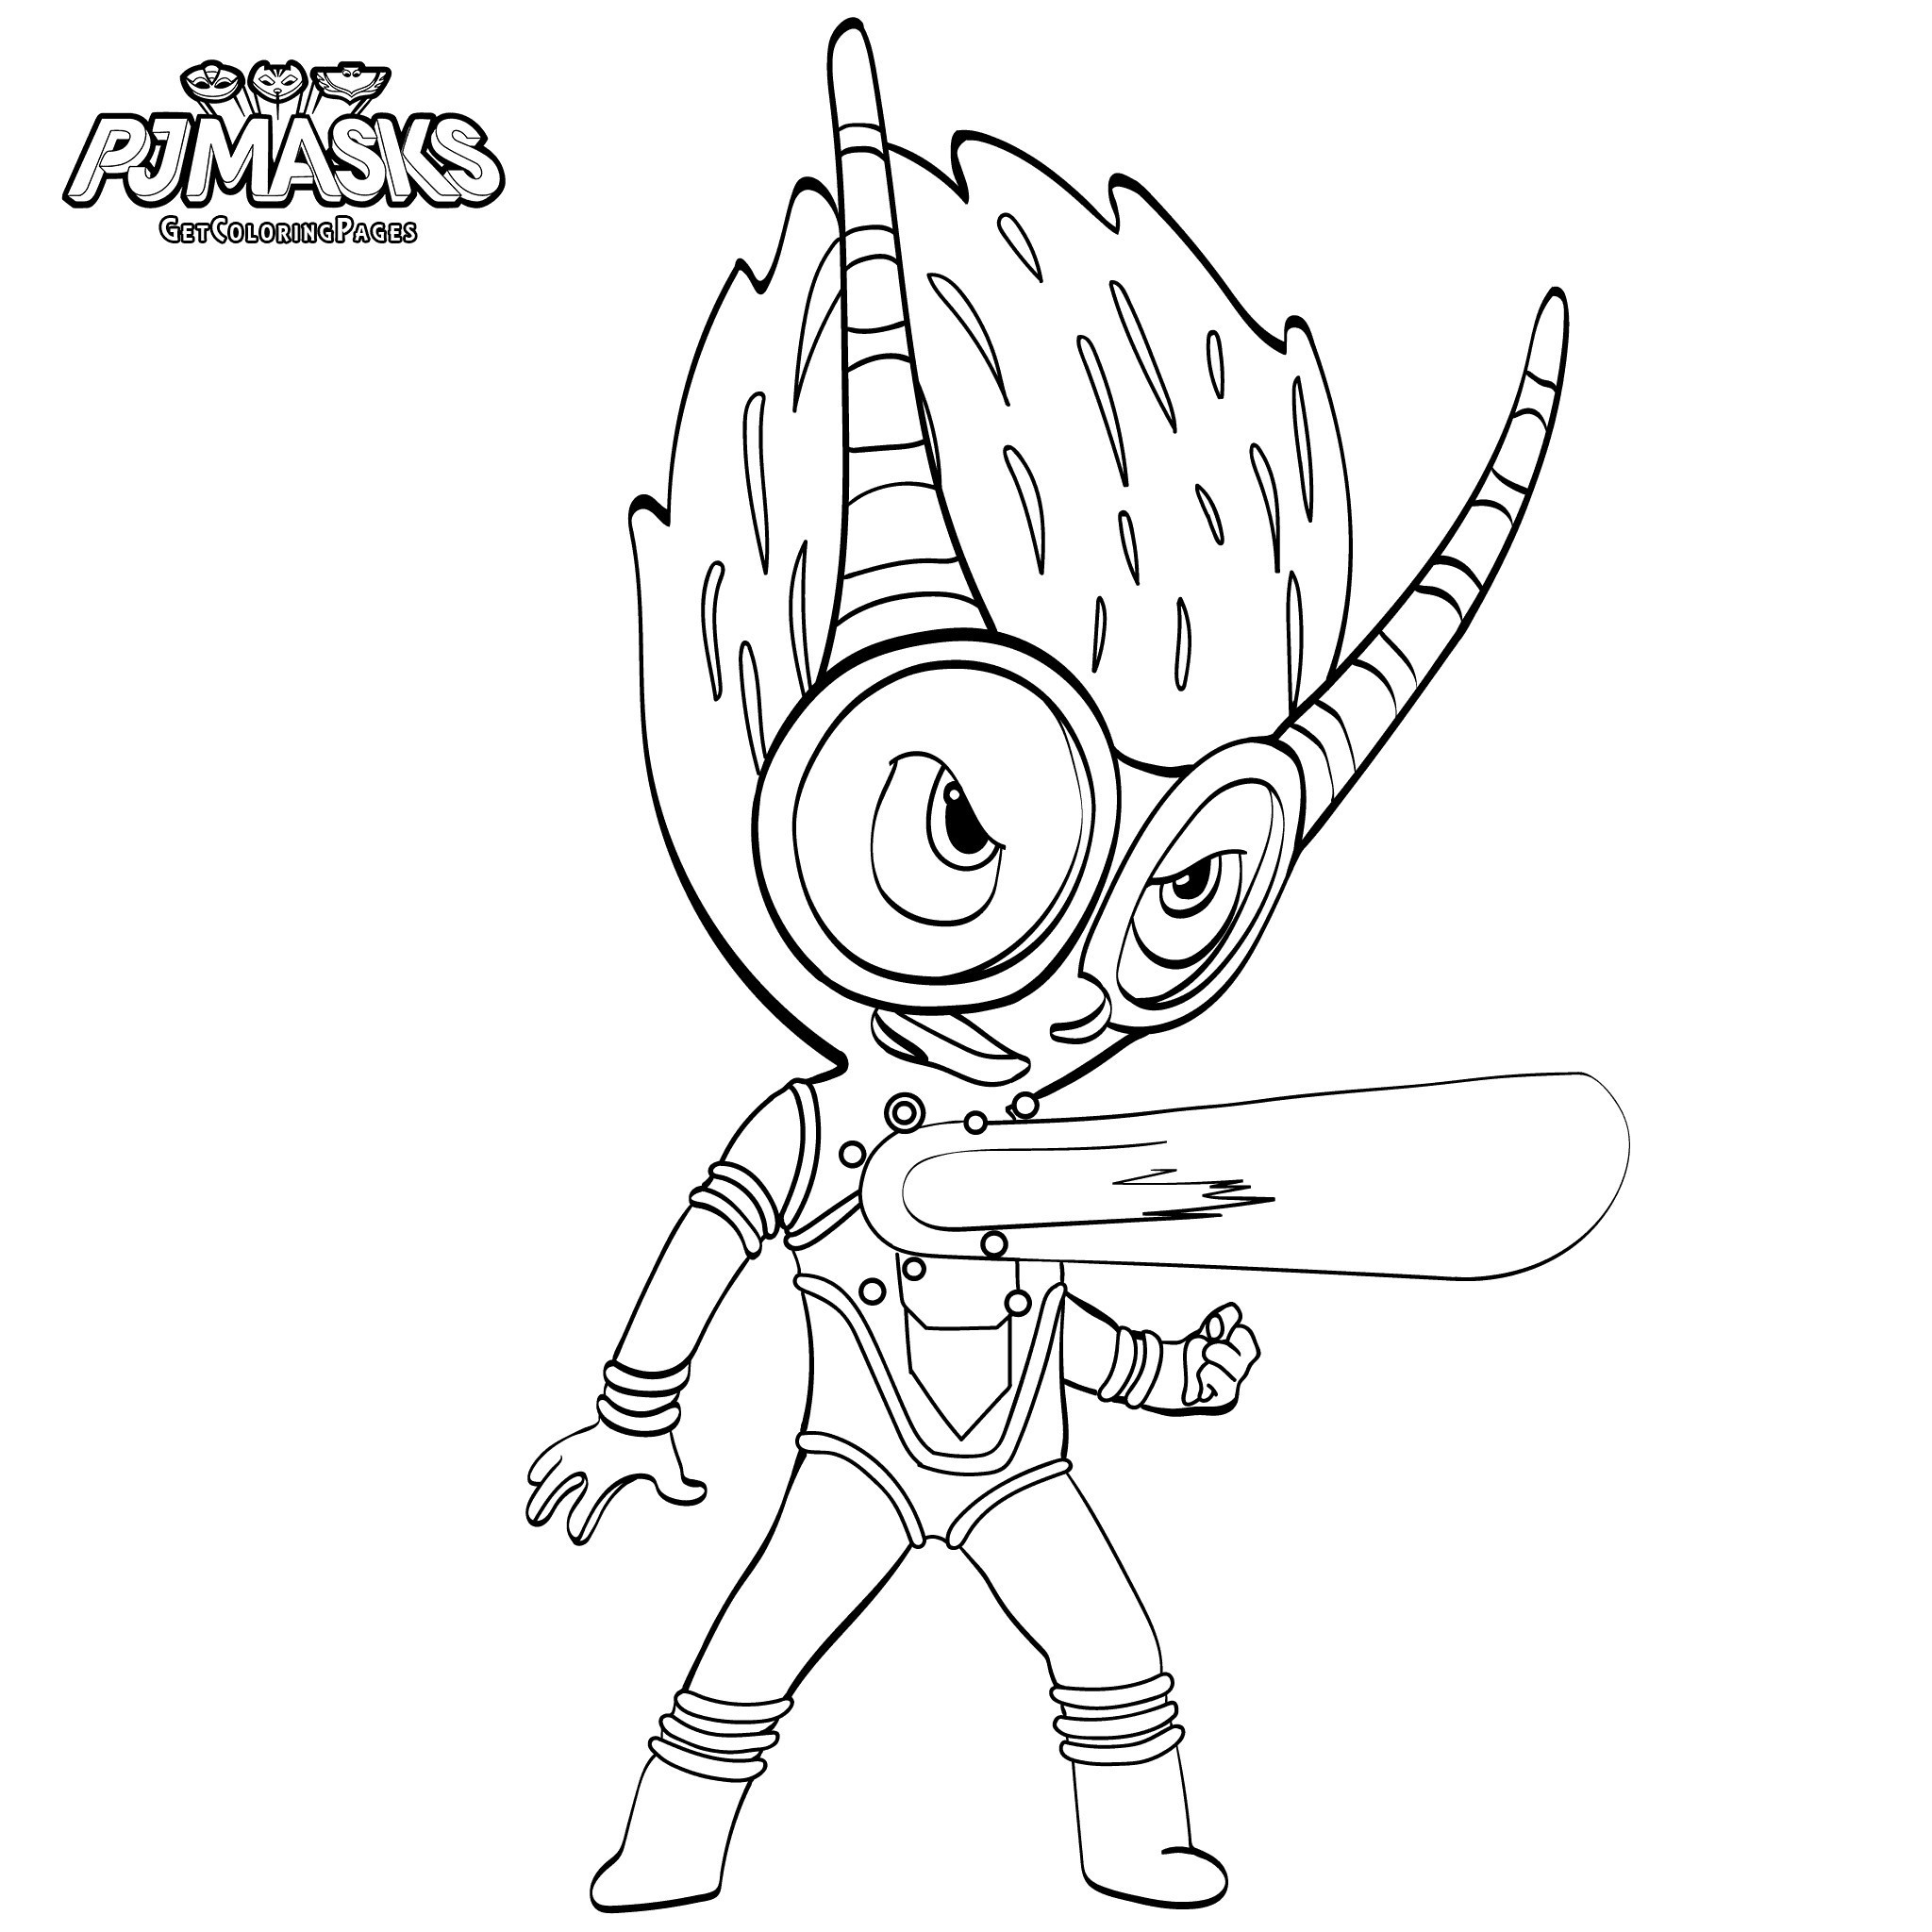 2048x2048 Pj Masks Gecko Coloring Pages Copy Catboy From Pj Masks Coloring